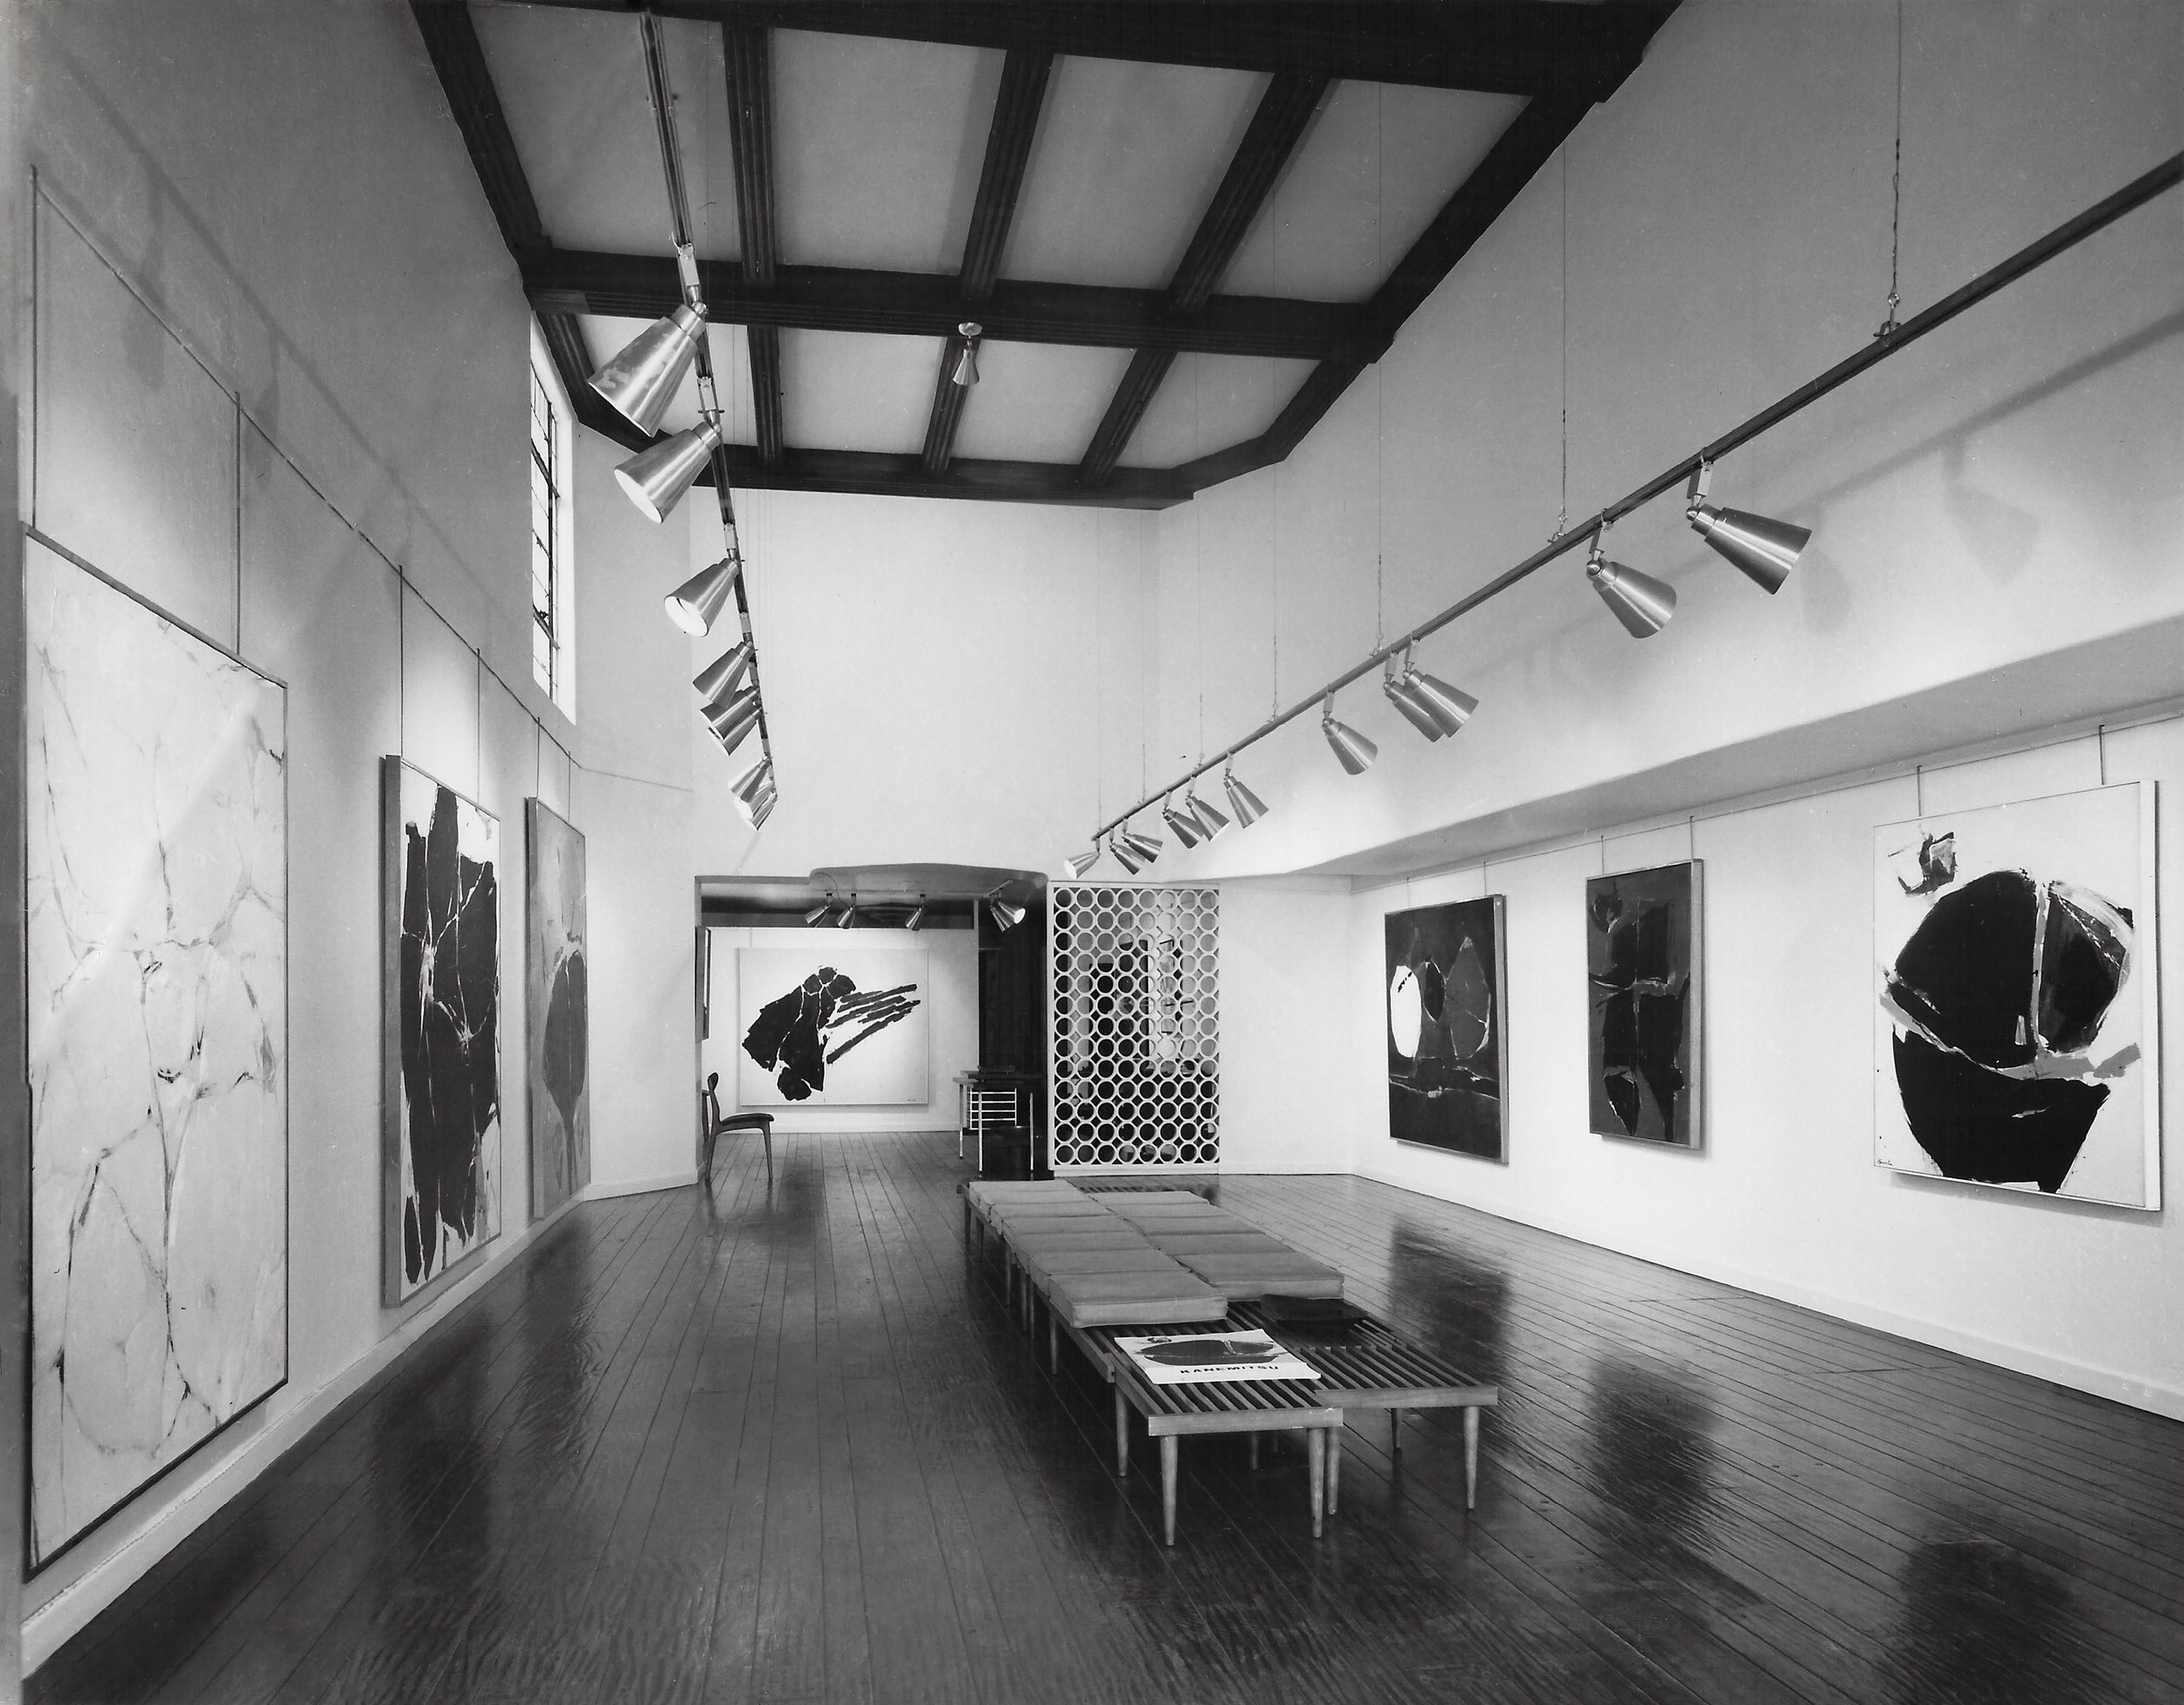 Works by Matsumi Kanemitsu at the Dwan Gallery, 1962.